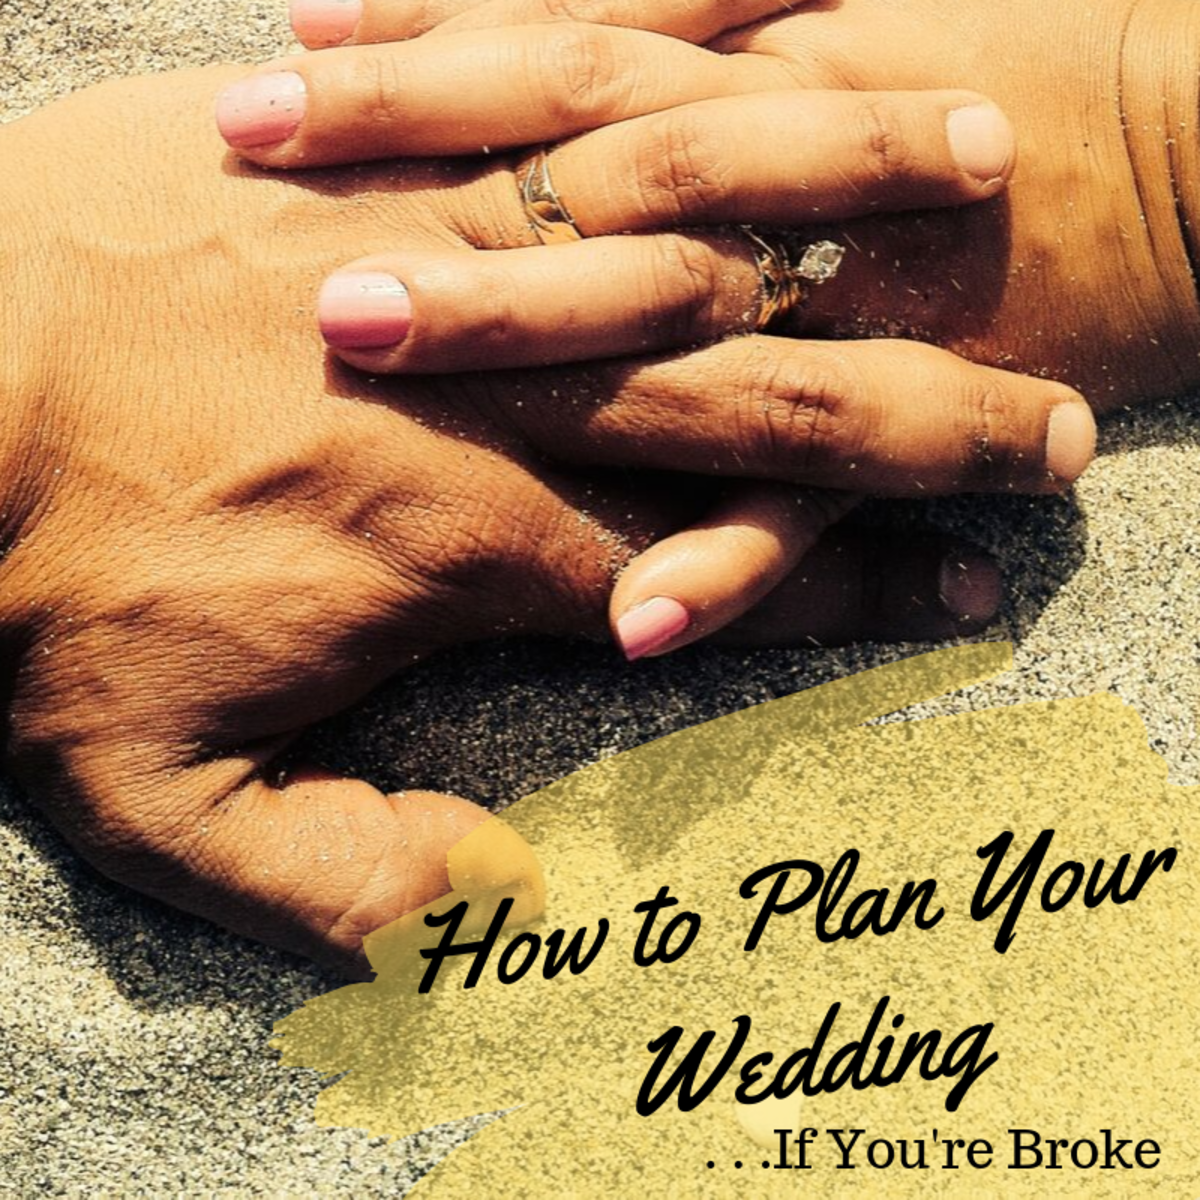 3 Ways to Plan Your Wedding and Reception on a Budget